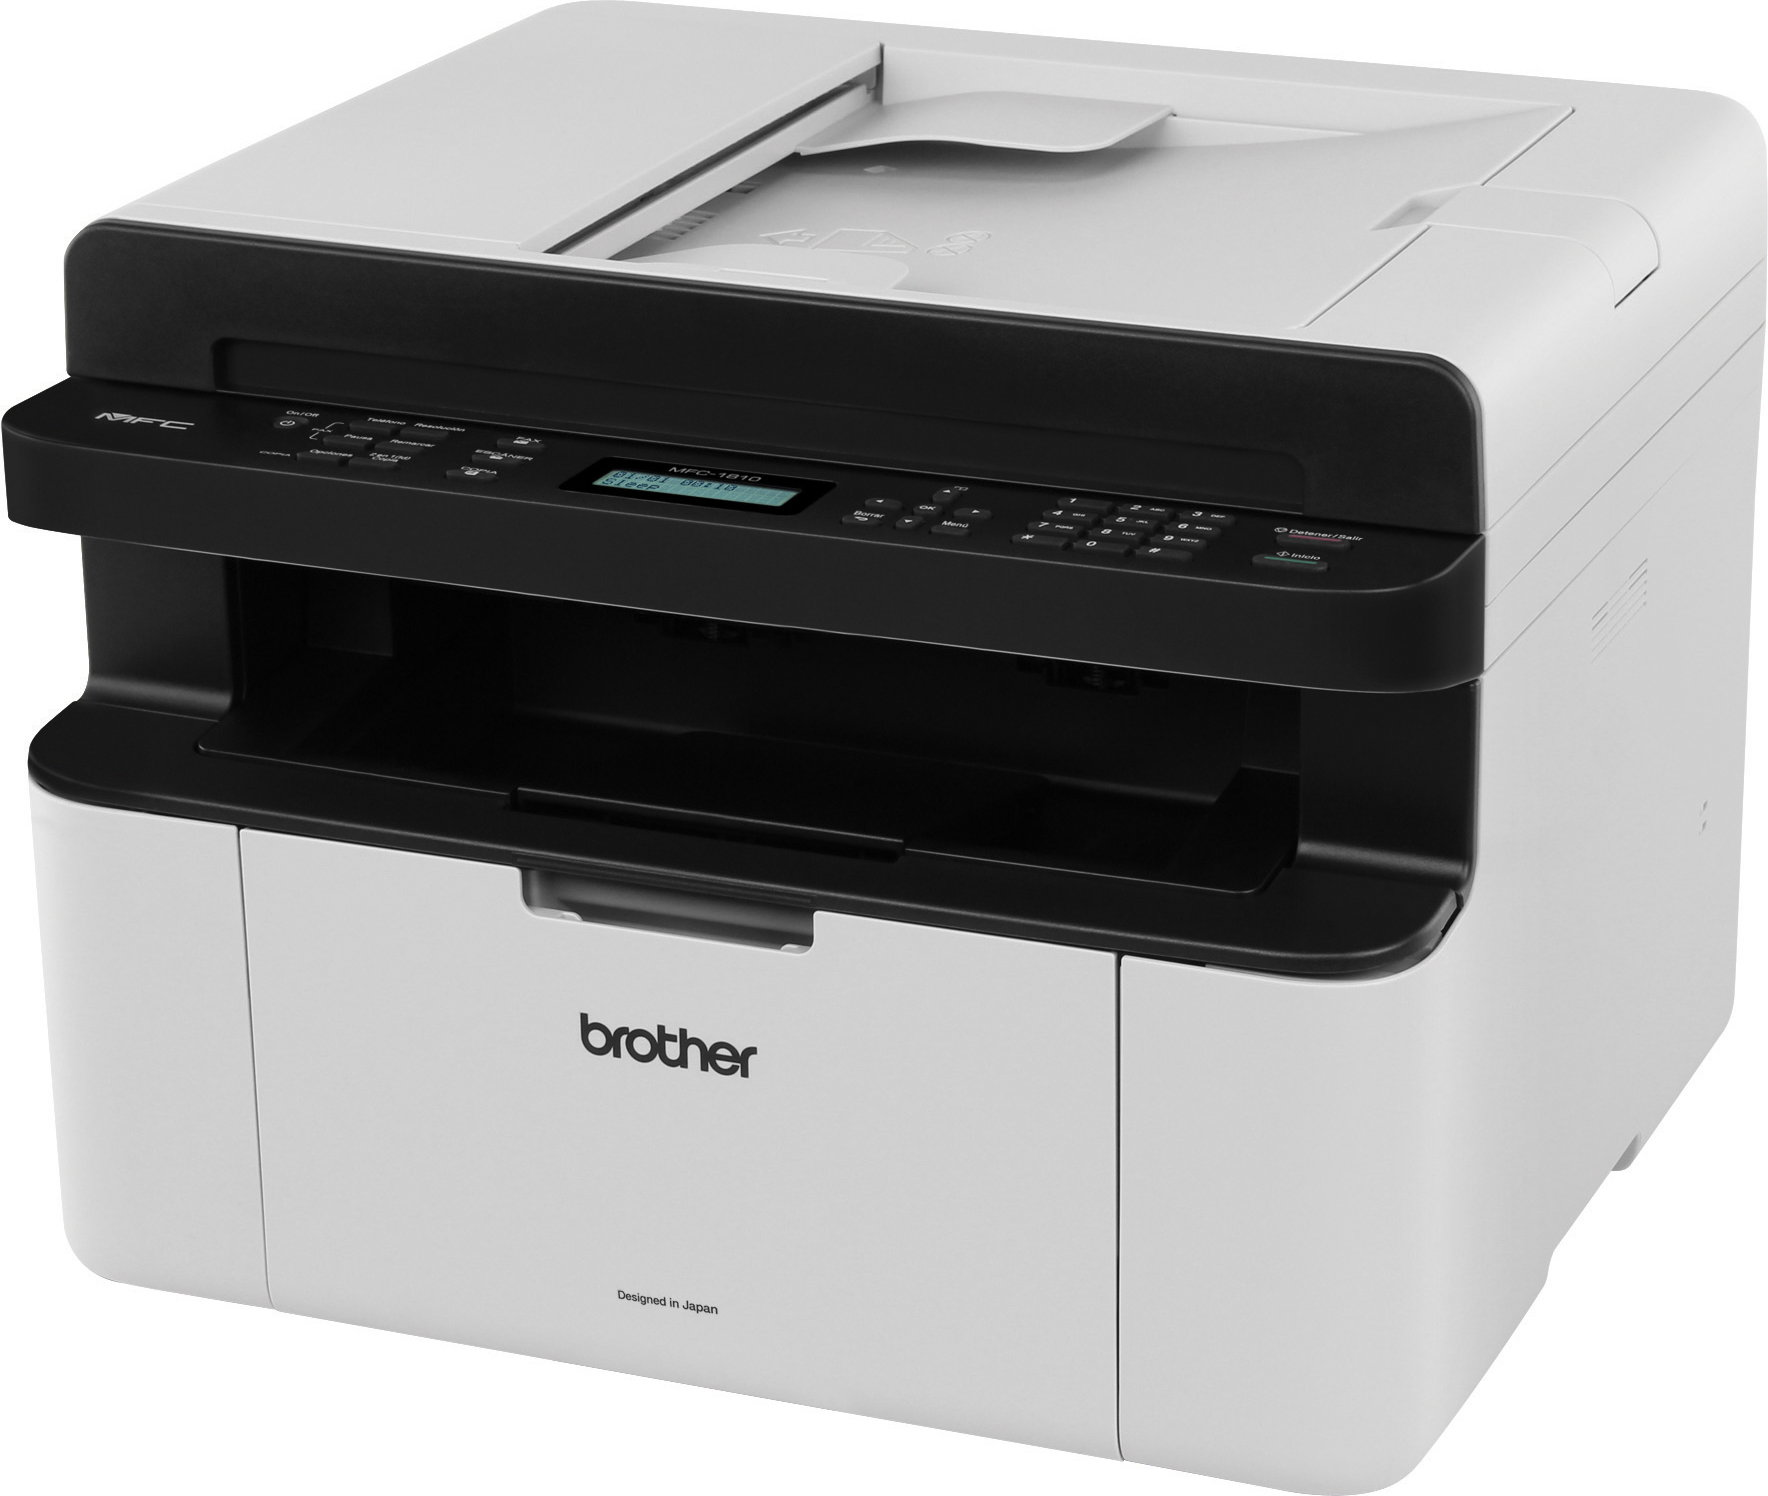 BROTHER MFC-1810E DRIVER FOR WINDOWS 8